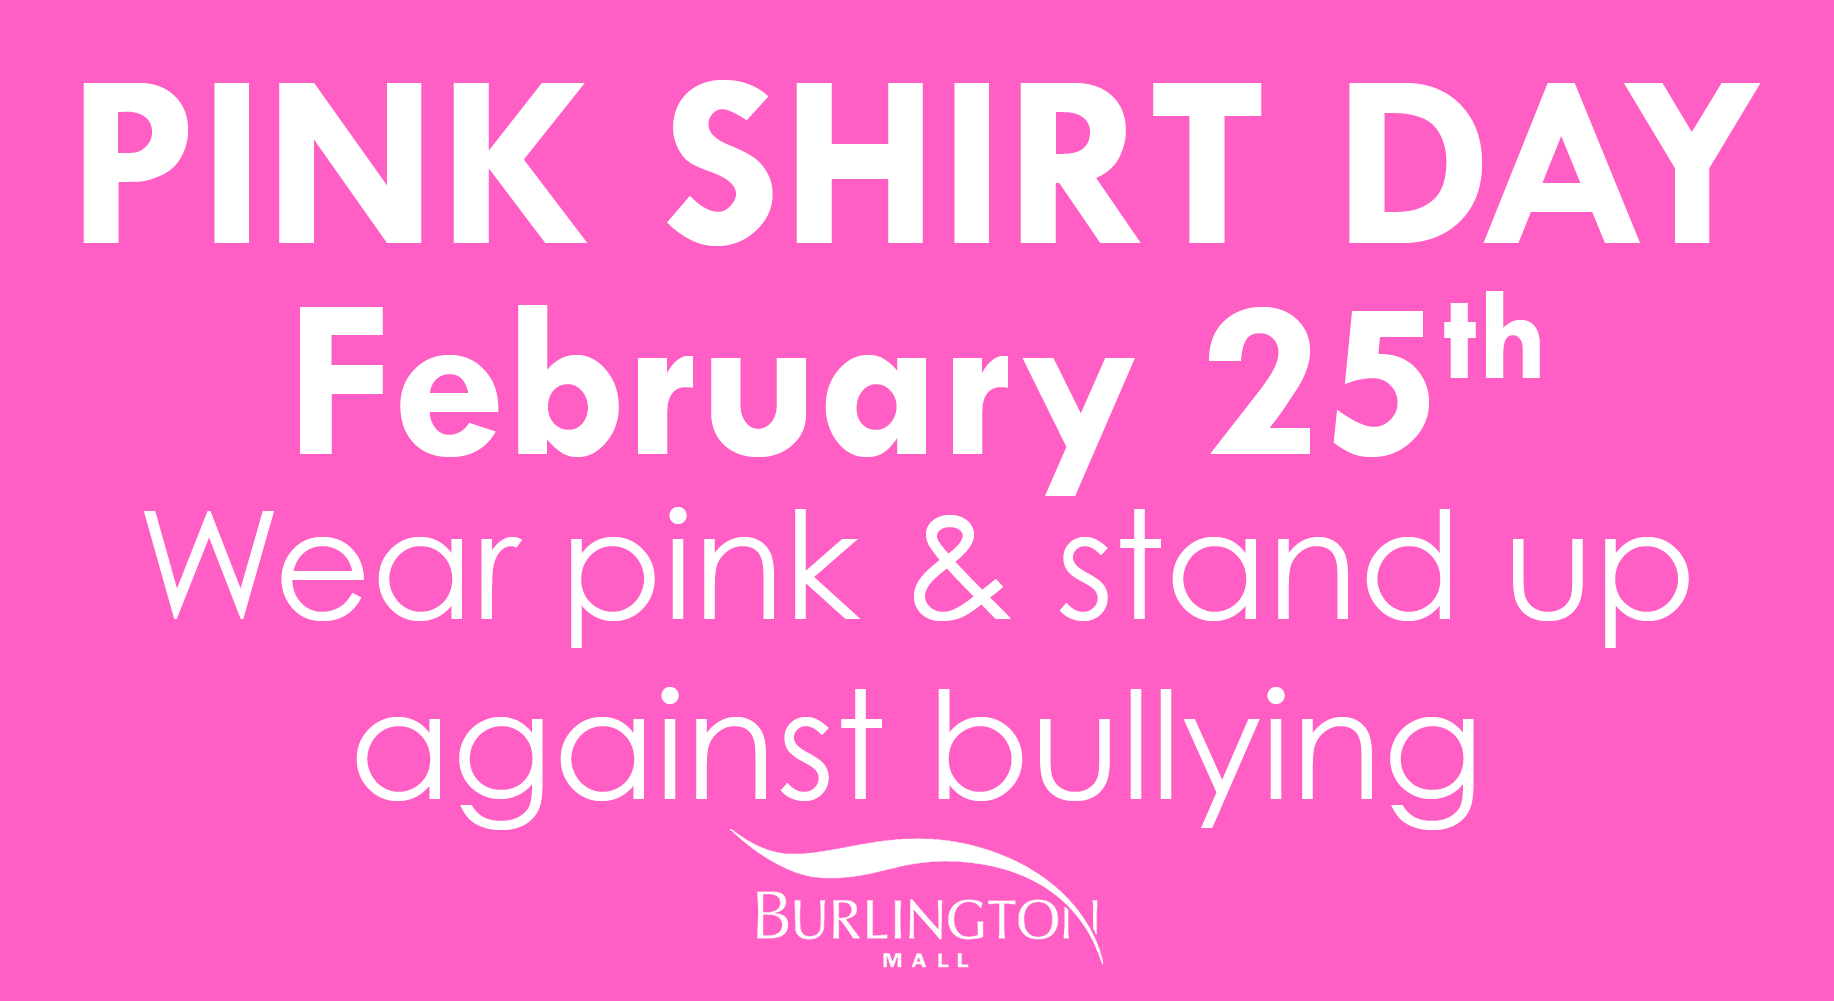 Wear pink and stand up against bullying. #BurlON #PinkShirtDay ...